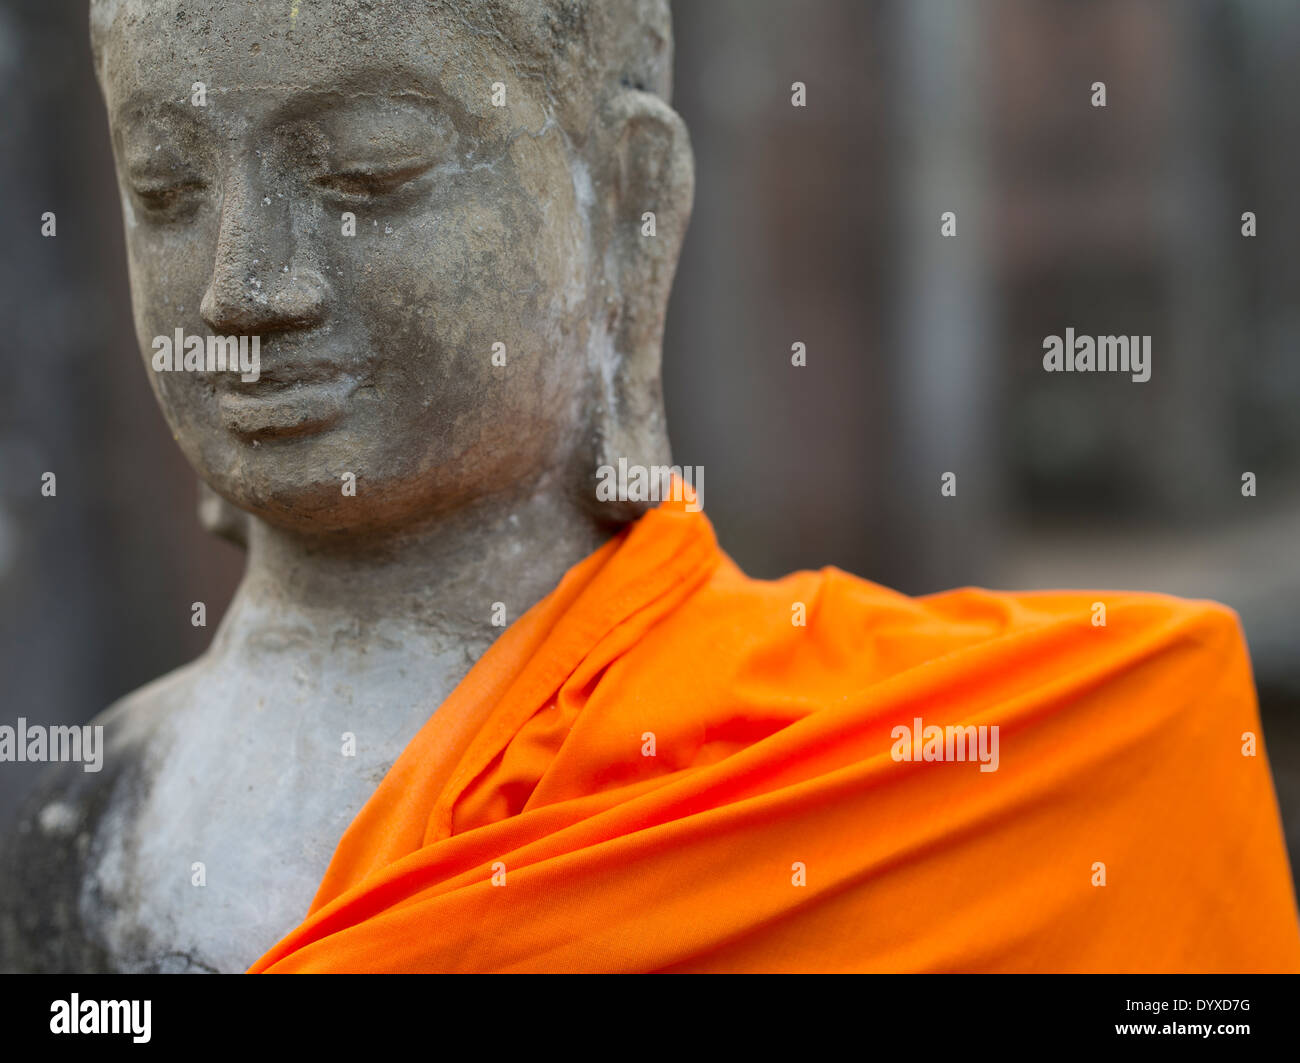 Buddhist statue in orange robes at Bayon Temple, Angkor Thom, Siem Reap, Cambodia - Stock Image